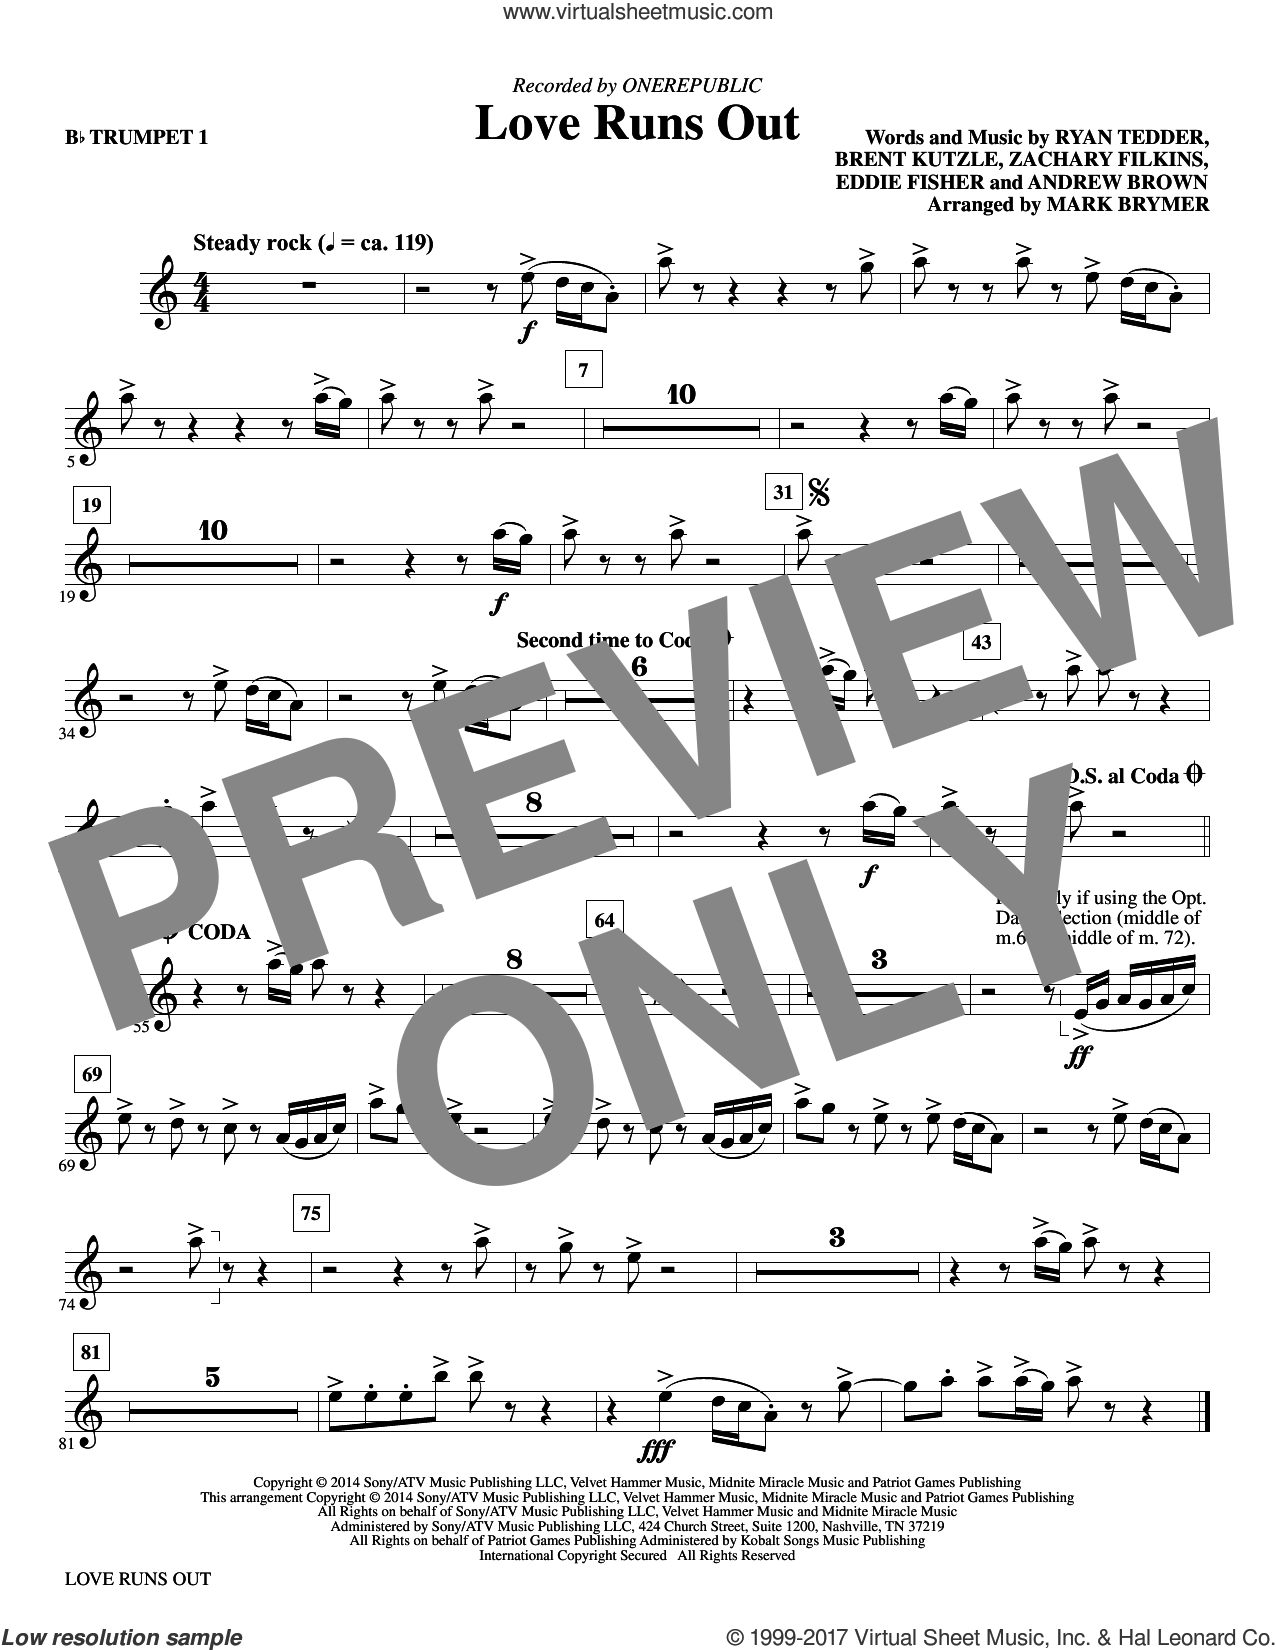 Love Runs Out (complete set of parts) sheet music for orchestra/band by Mark Brymer, Andrew Brown, Eddie Fisher, OneRepublic and Ryan Tedder, intermediate orchestra/band. Score Image Preview.